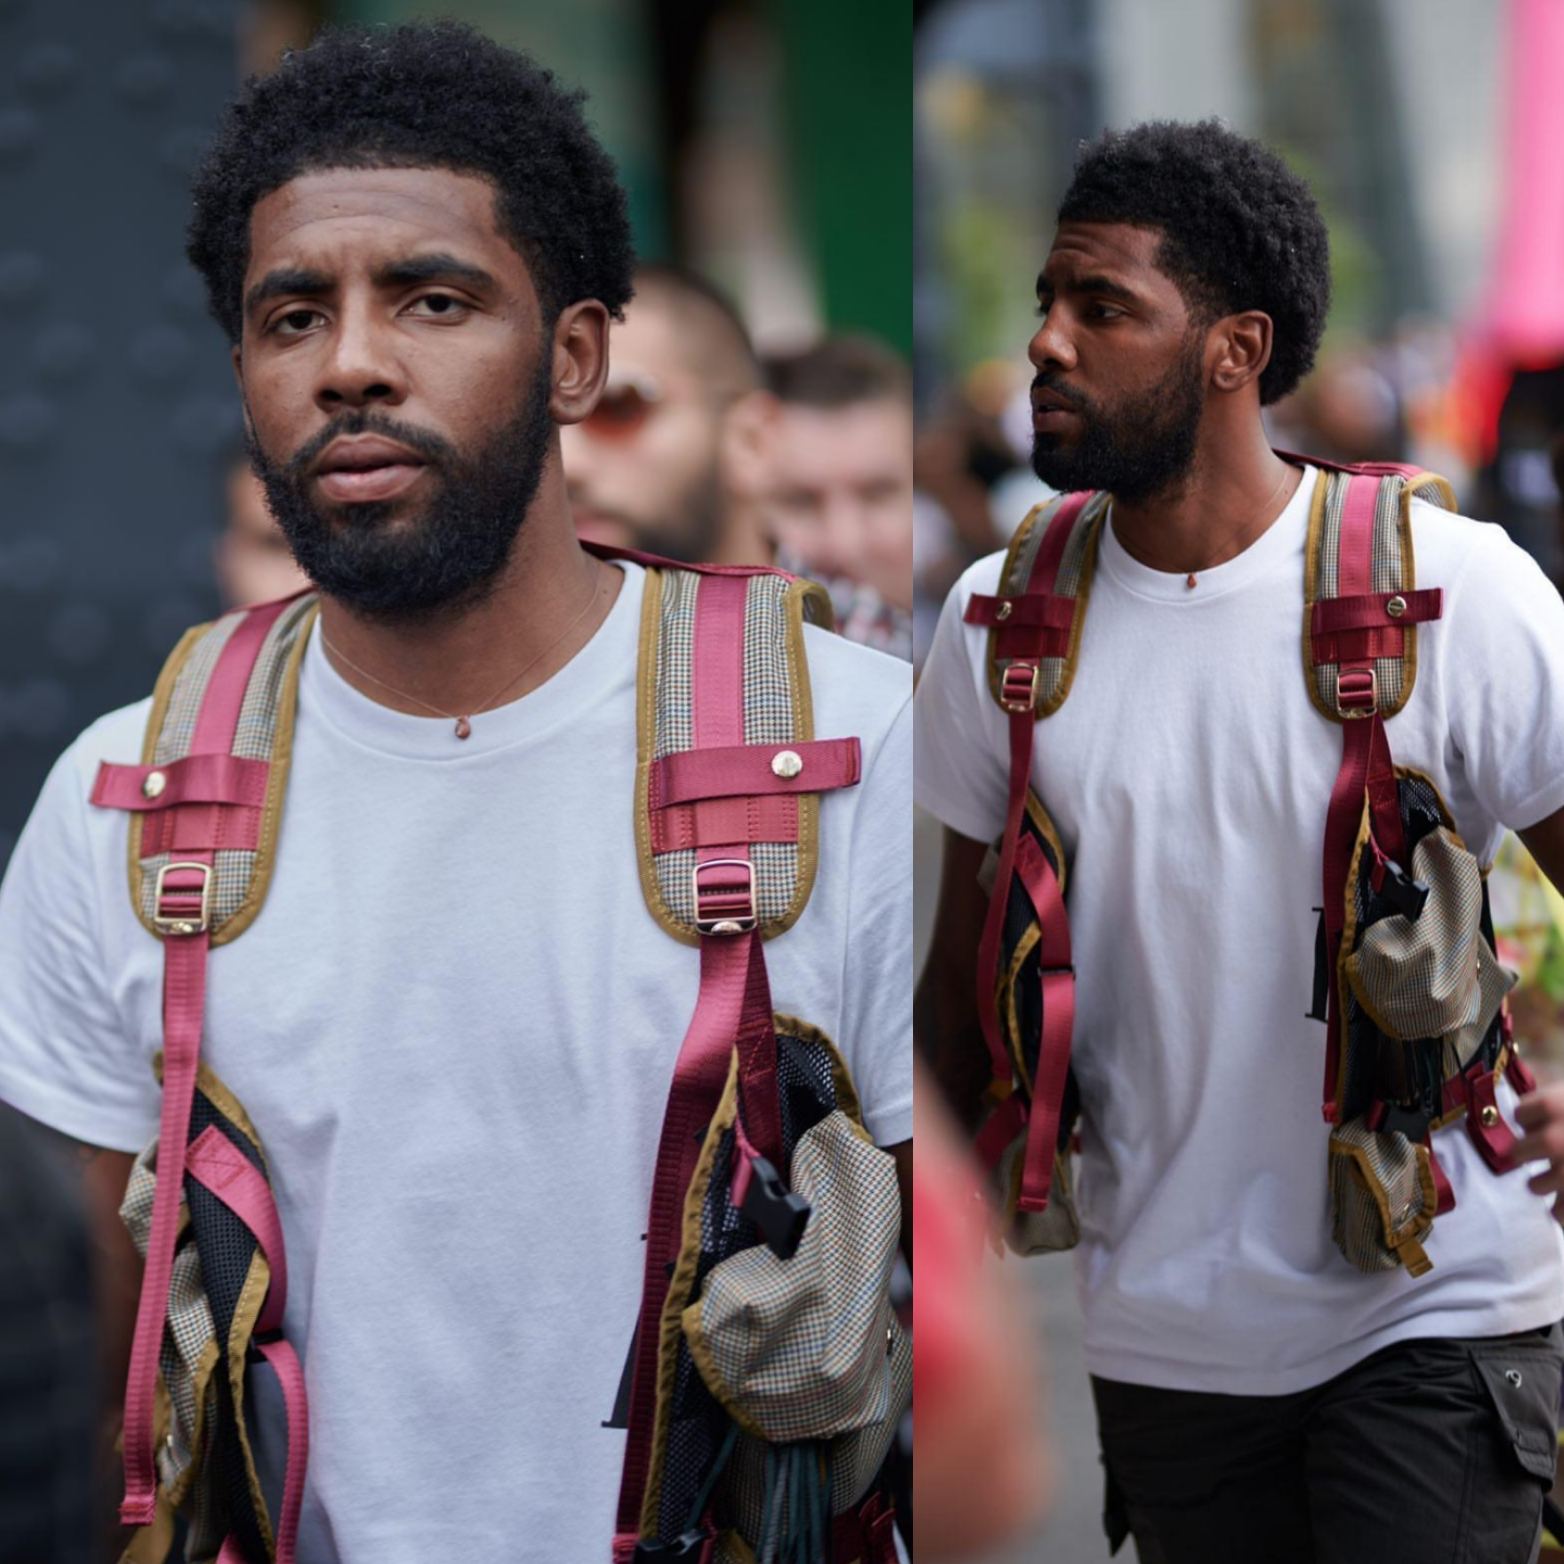 Kyrie Irving Makes New York Fashion Week Debut At Coach Spring/Summer '20